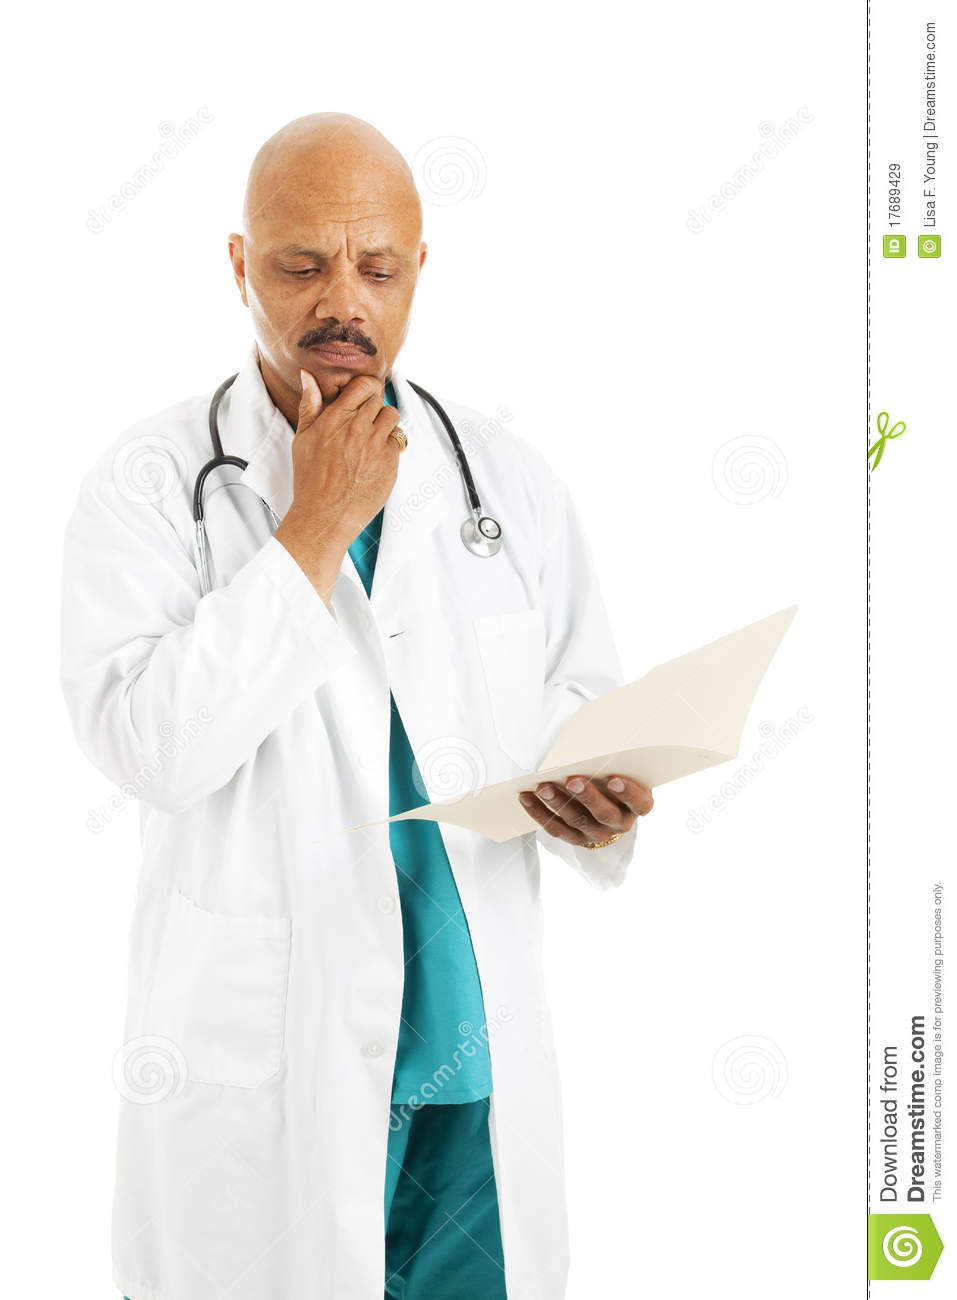 Doctor Reviews Patient Chart Stock Image - Image of doctors